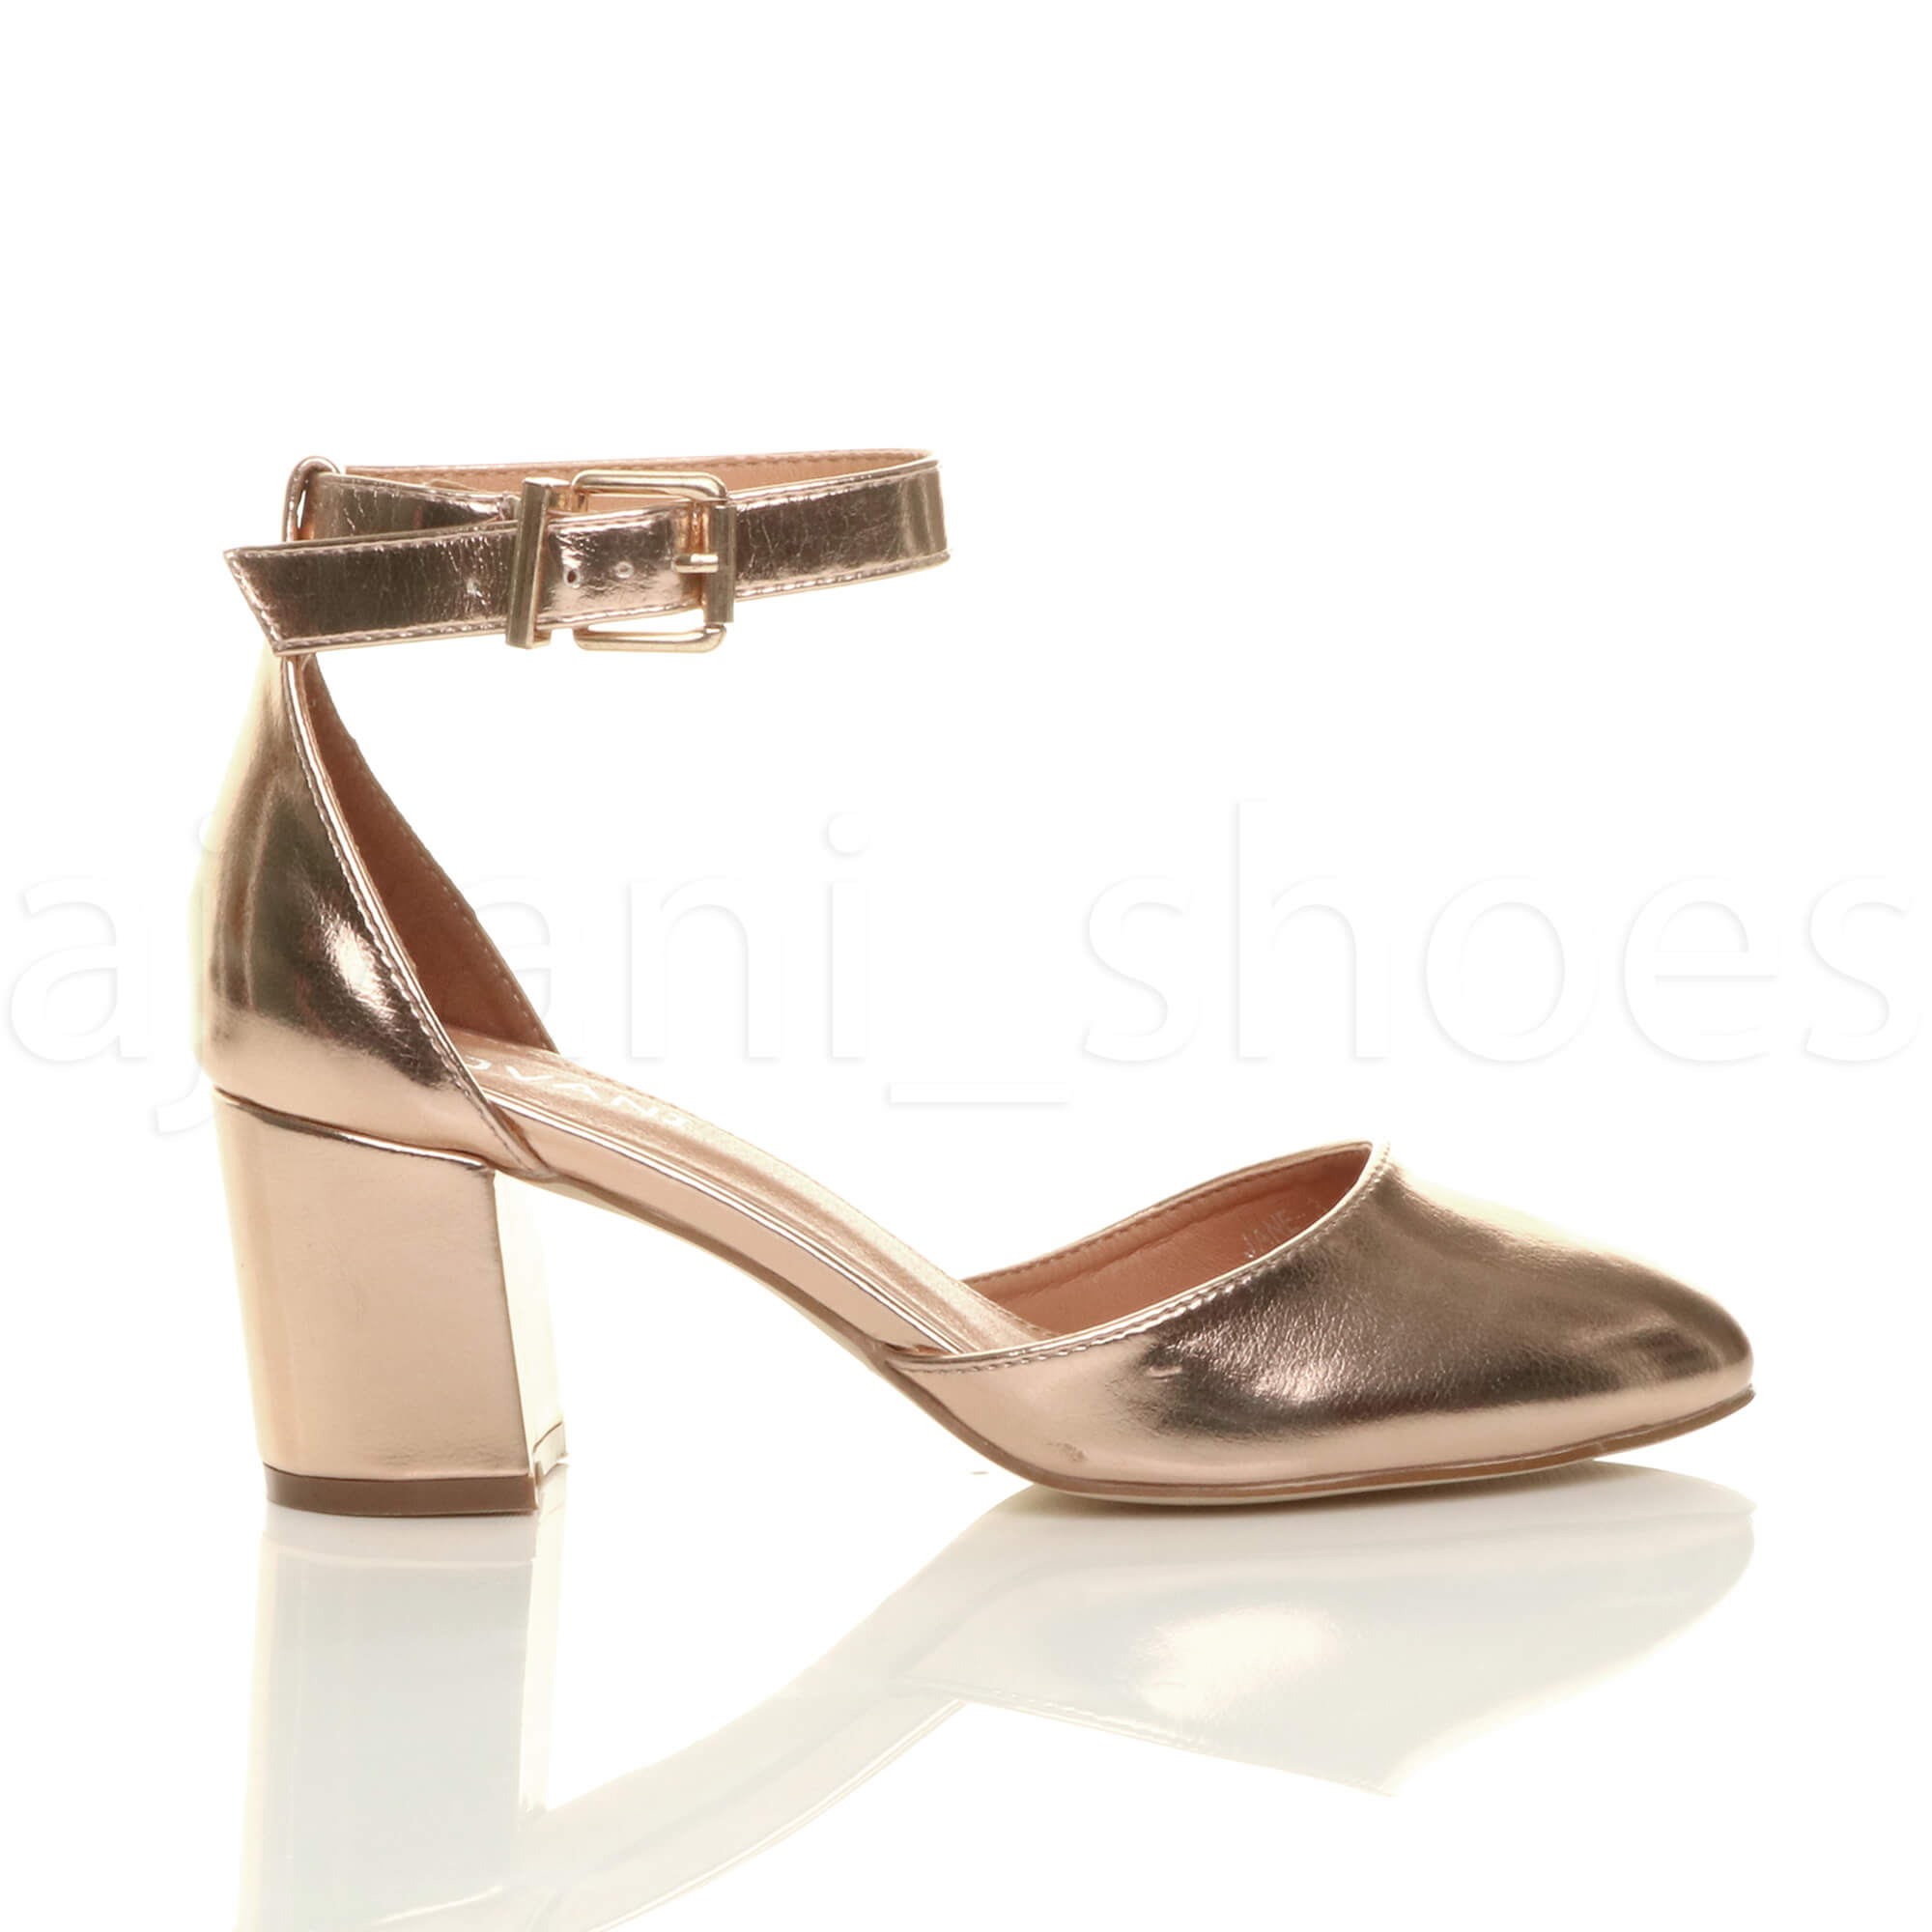 WOMENS-LADIES-LOW-MID-BLOCK-HEEL-ANKLE-STRAP-MARY-JANE-COURT-SHOES-SANDALS-SIZE thumbnail 147